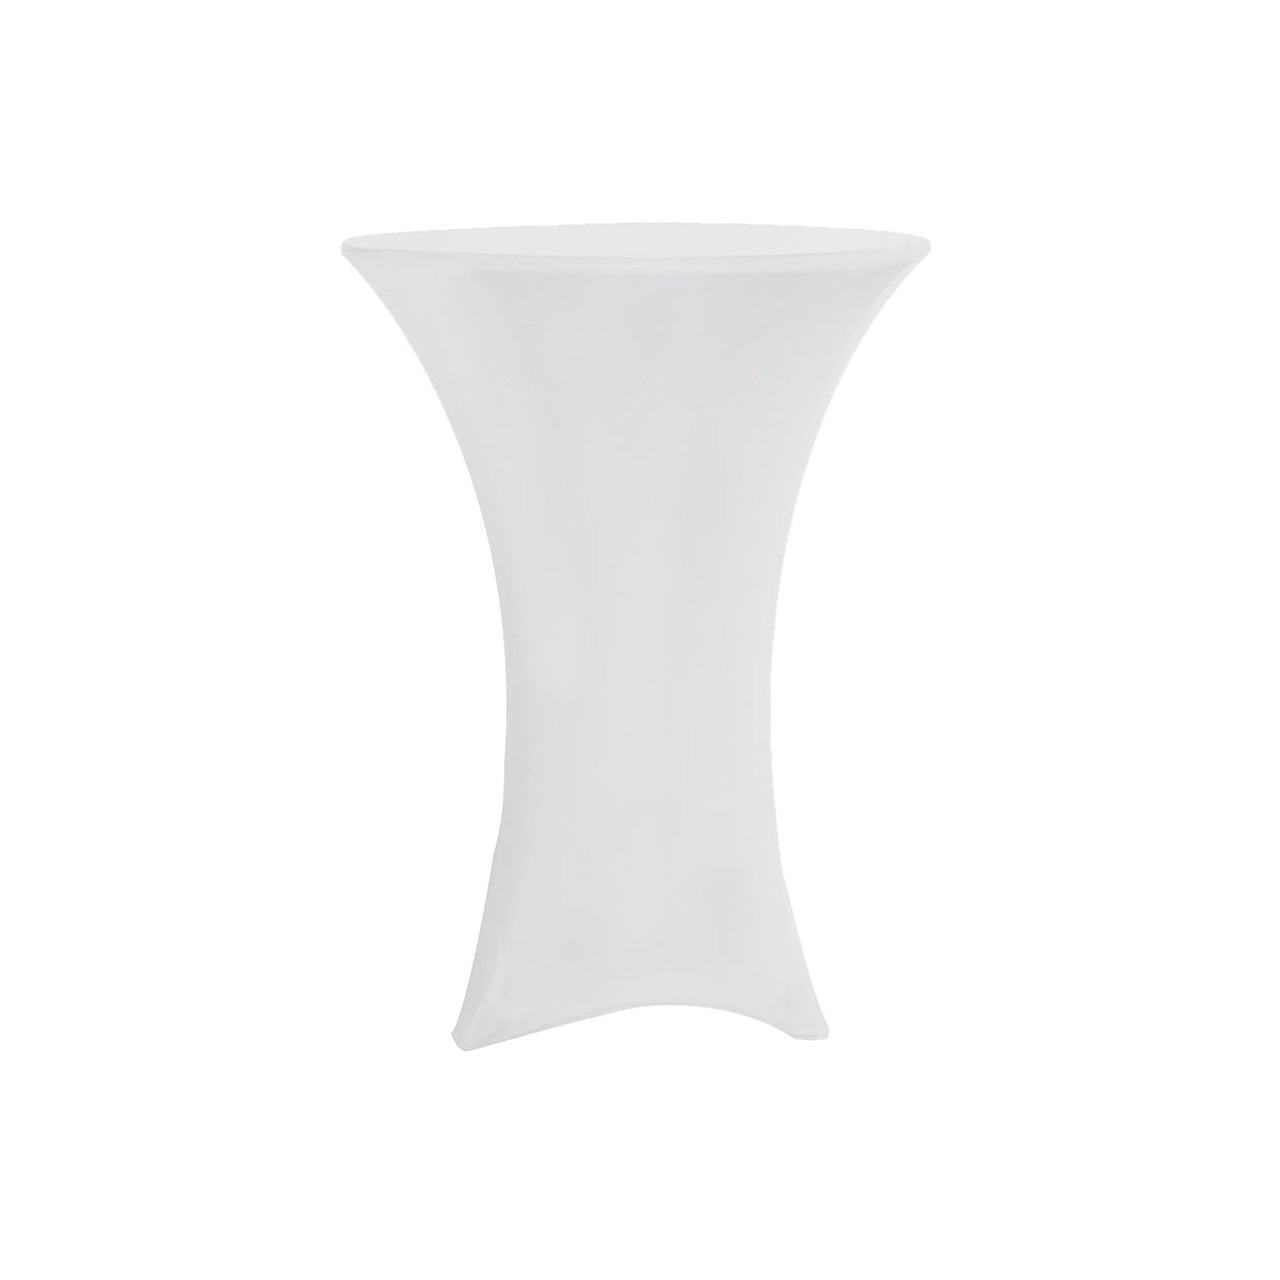 Spandex Table Cover White